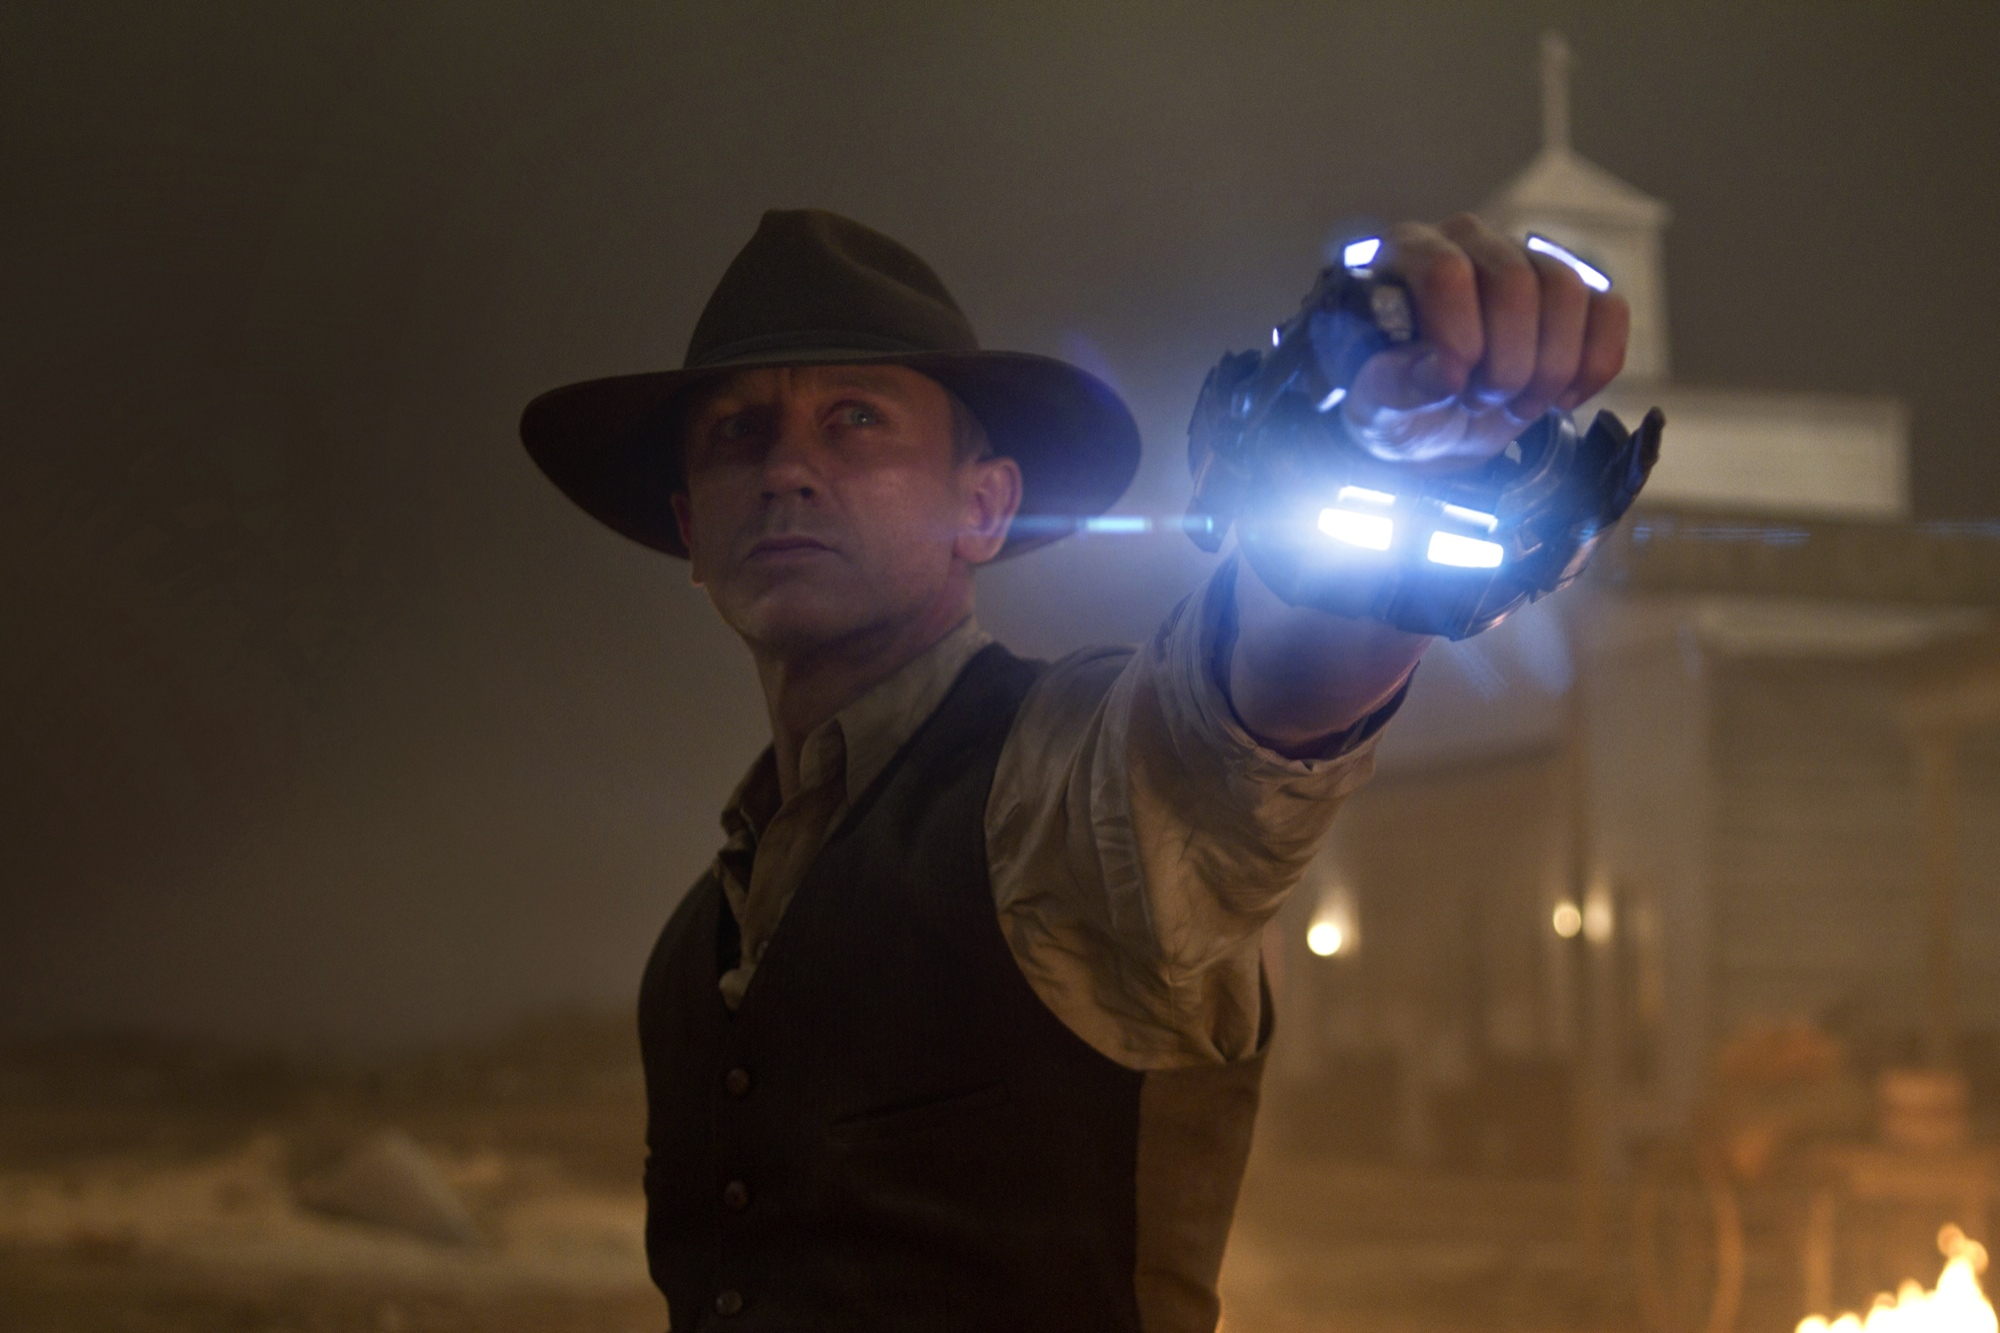 Review: Cowboys & Aliens (2011) — 3 Brothers Film